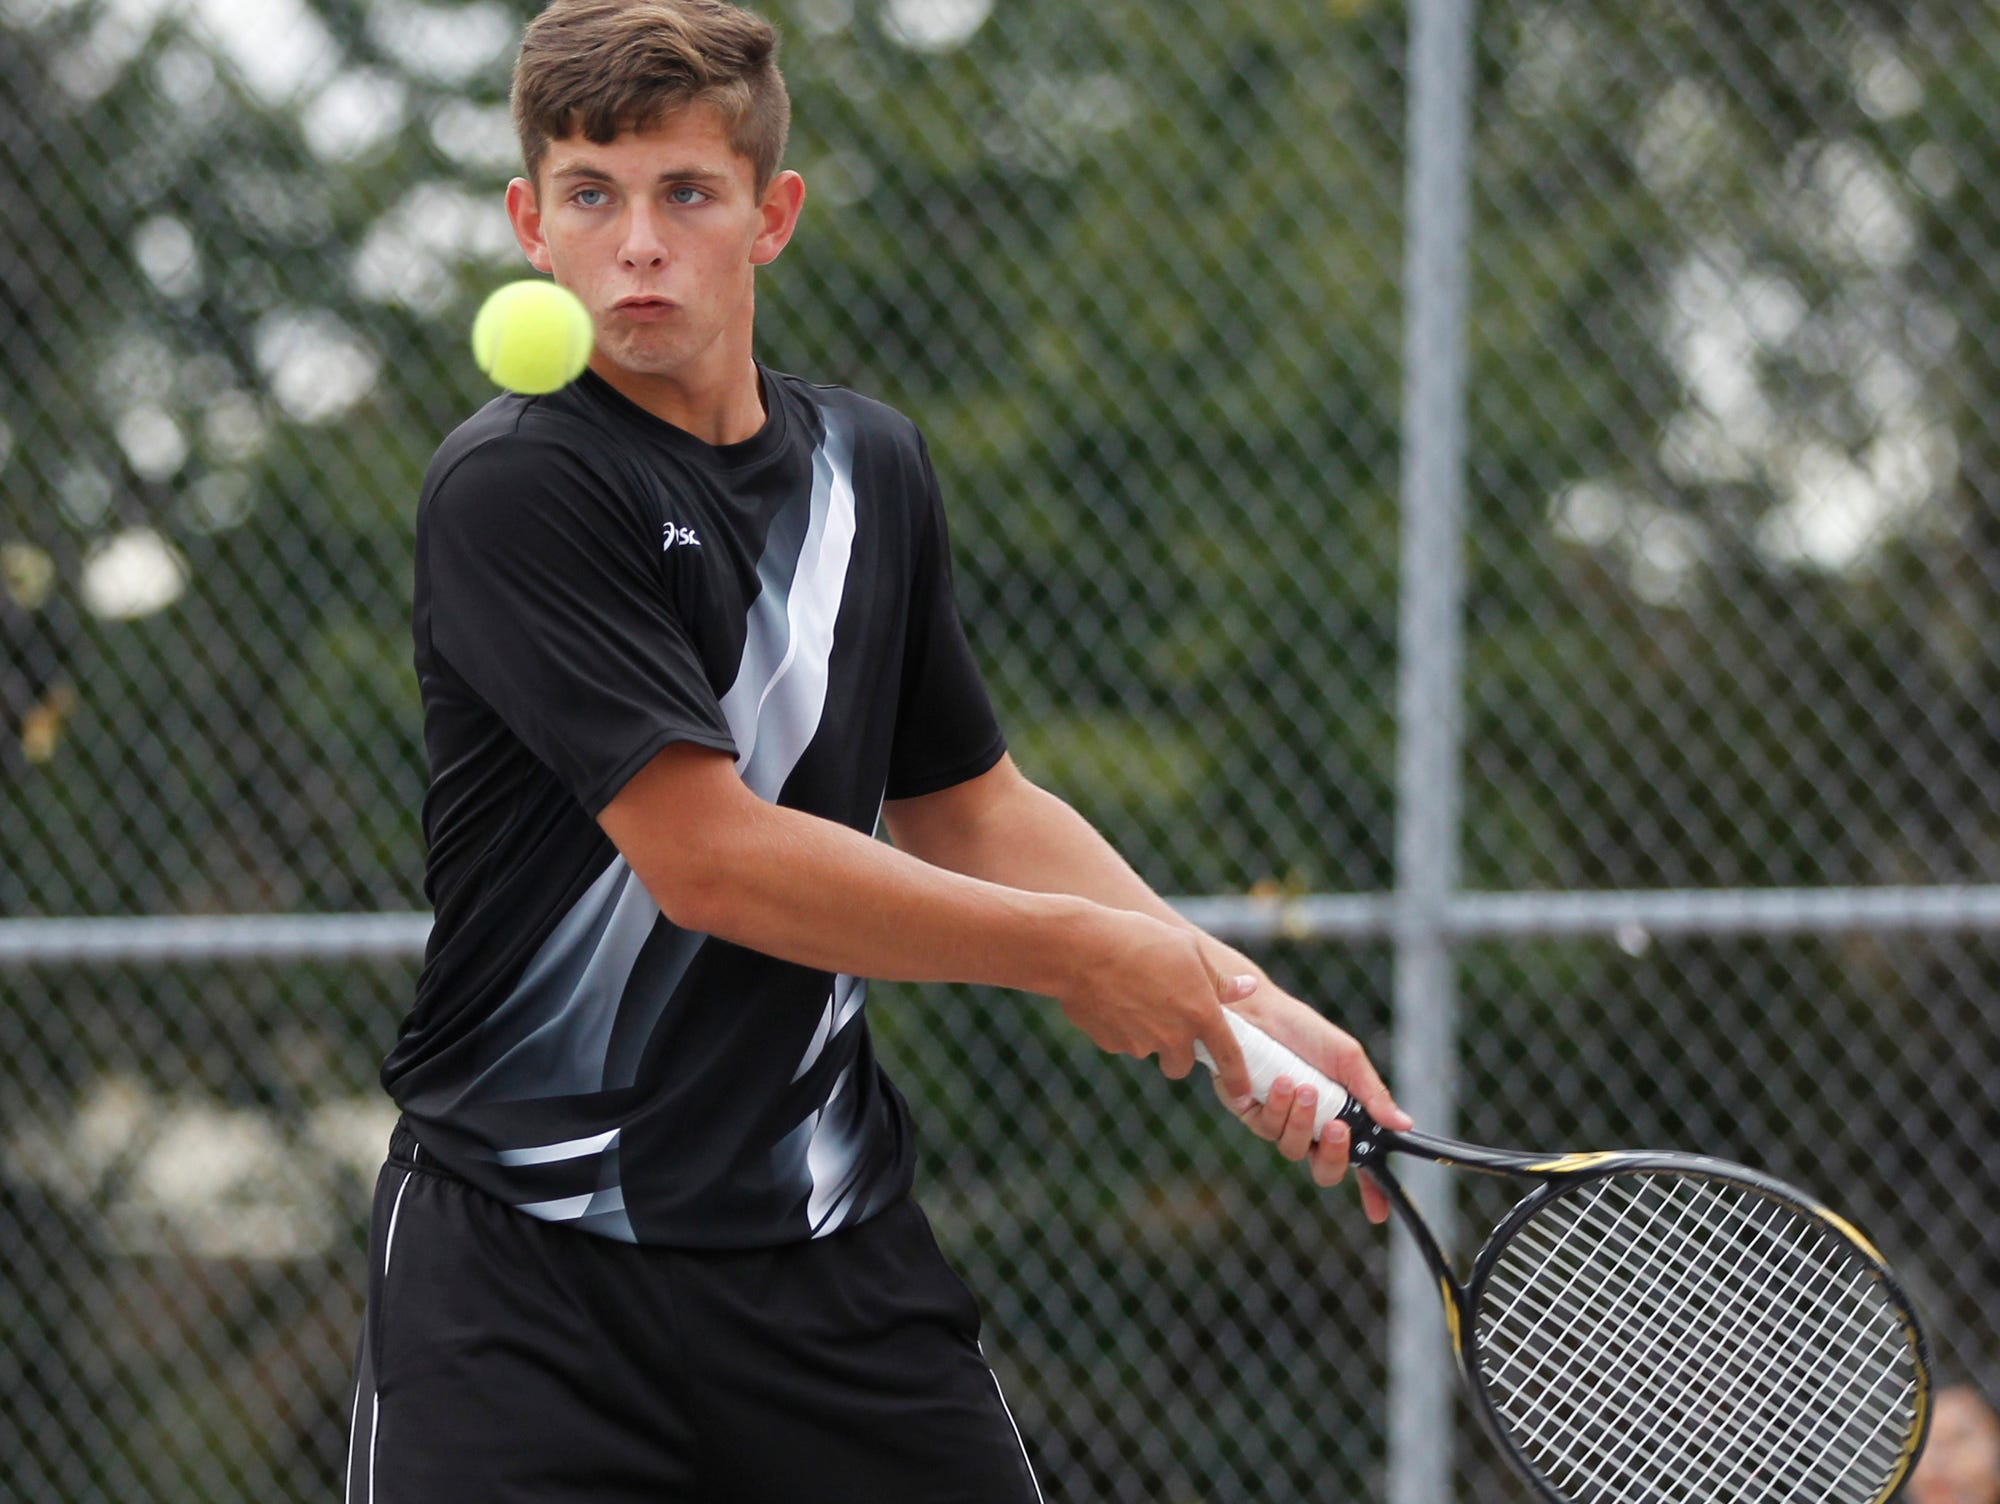 Lafayette Jeff's Jacob Isbell with a return as he and teammate Danny Isbell take on West Lafayette's Jatin Sinahal and Danial Watanabe at No. 2 doubles in the boys tennis sectional championship Friday, October 2, 2015, at Cumberland Courts in West Lafayette.